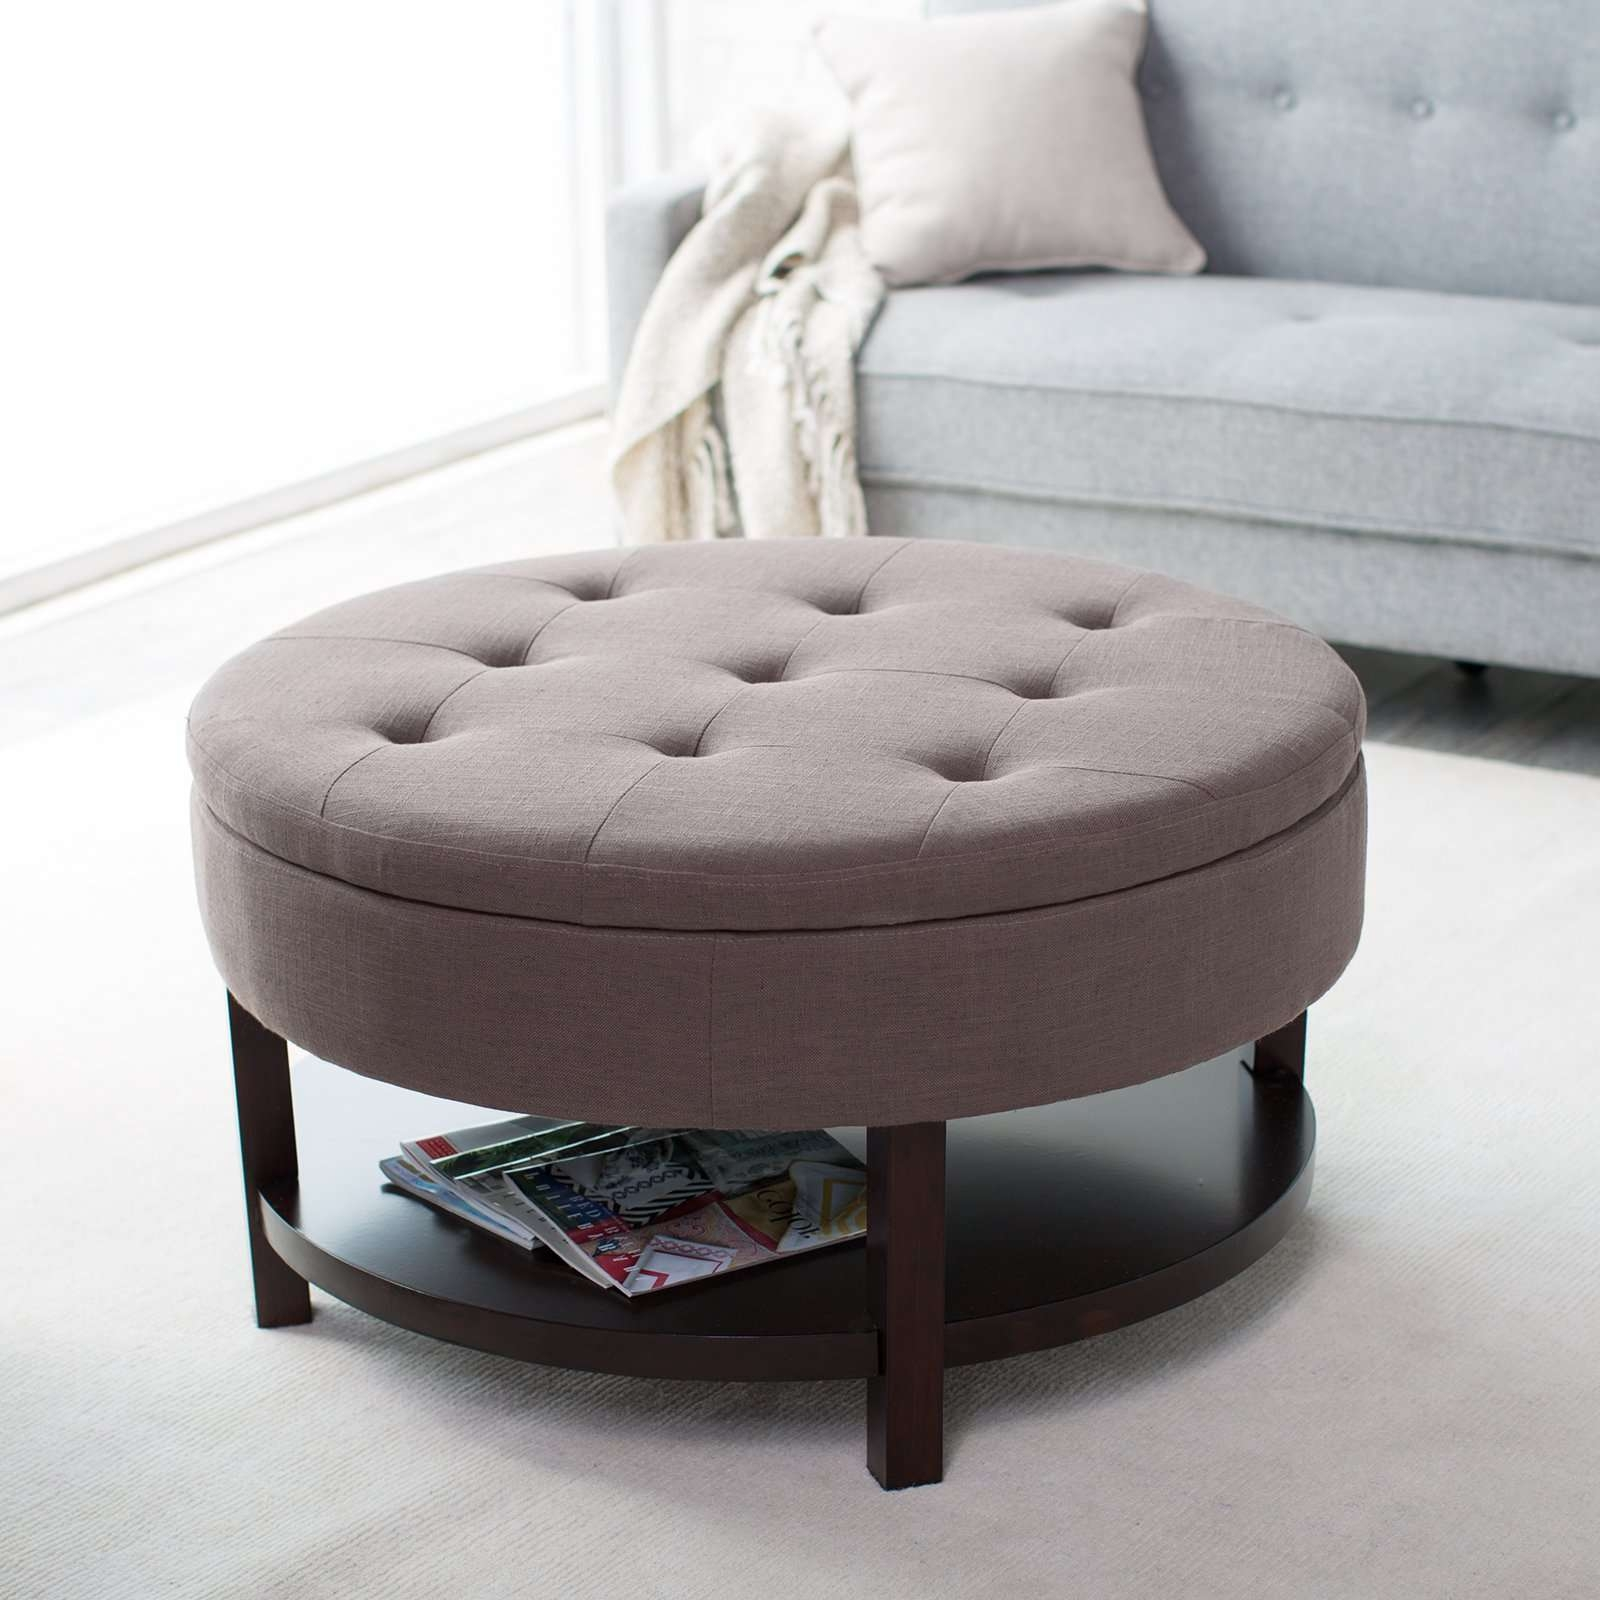 Coffee Table : Magnificent Brown Leather Ottoman Coffee Table Intended For Favorite Round Upholstered Coffee Tables (View 7 of 20)